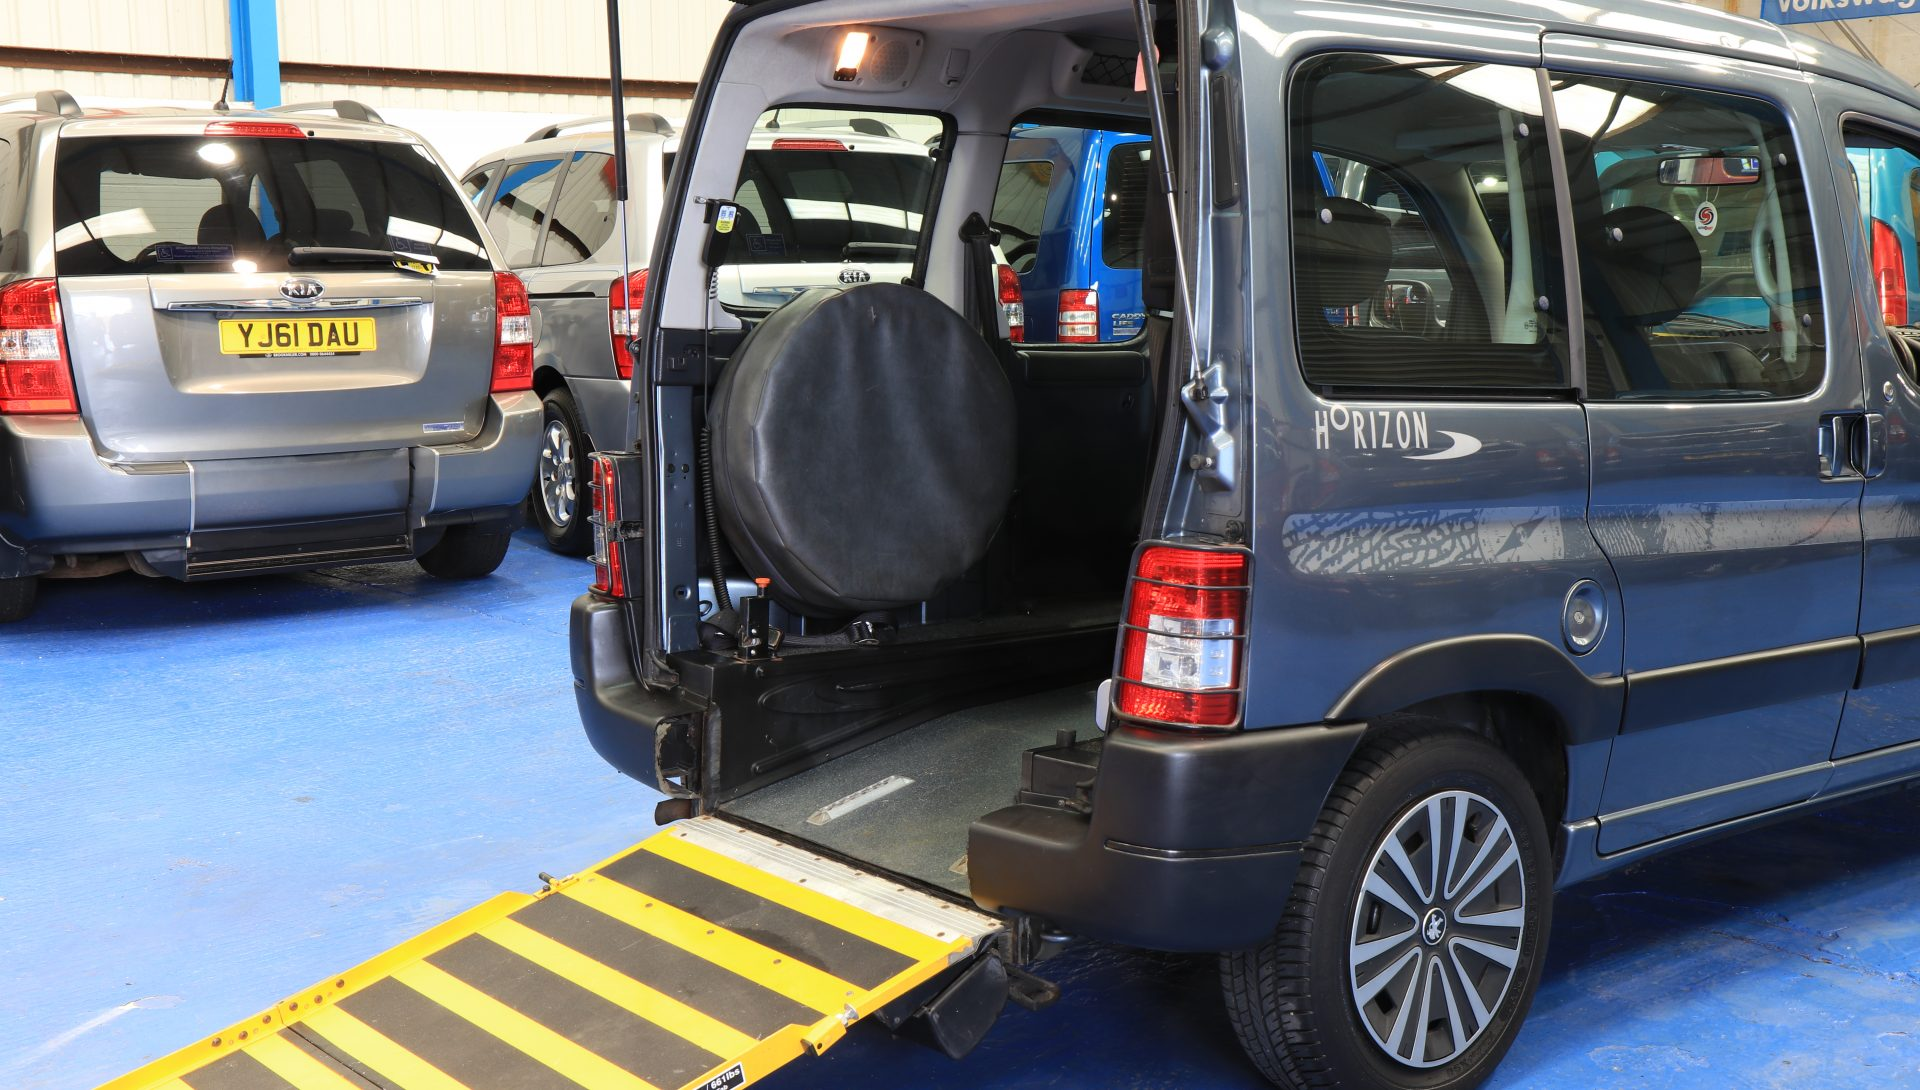 Partner hdi Wheelchair accessible car